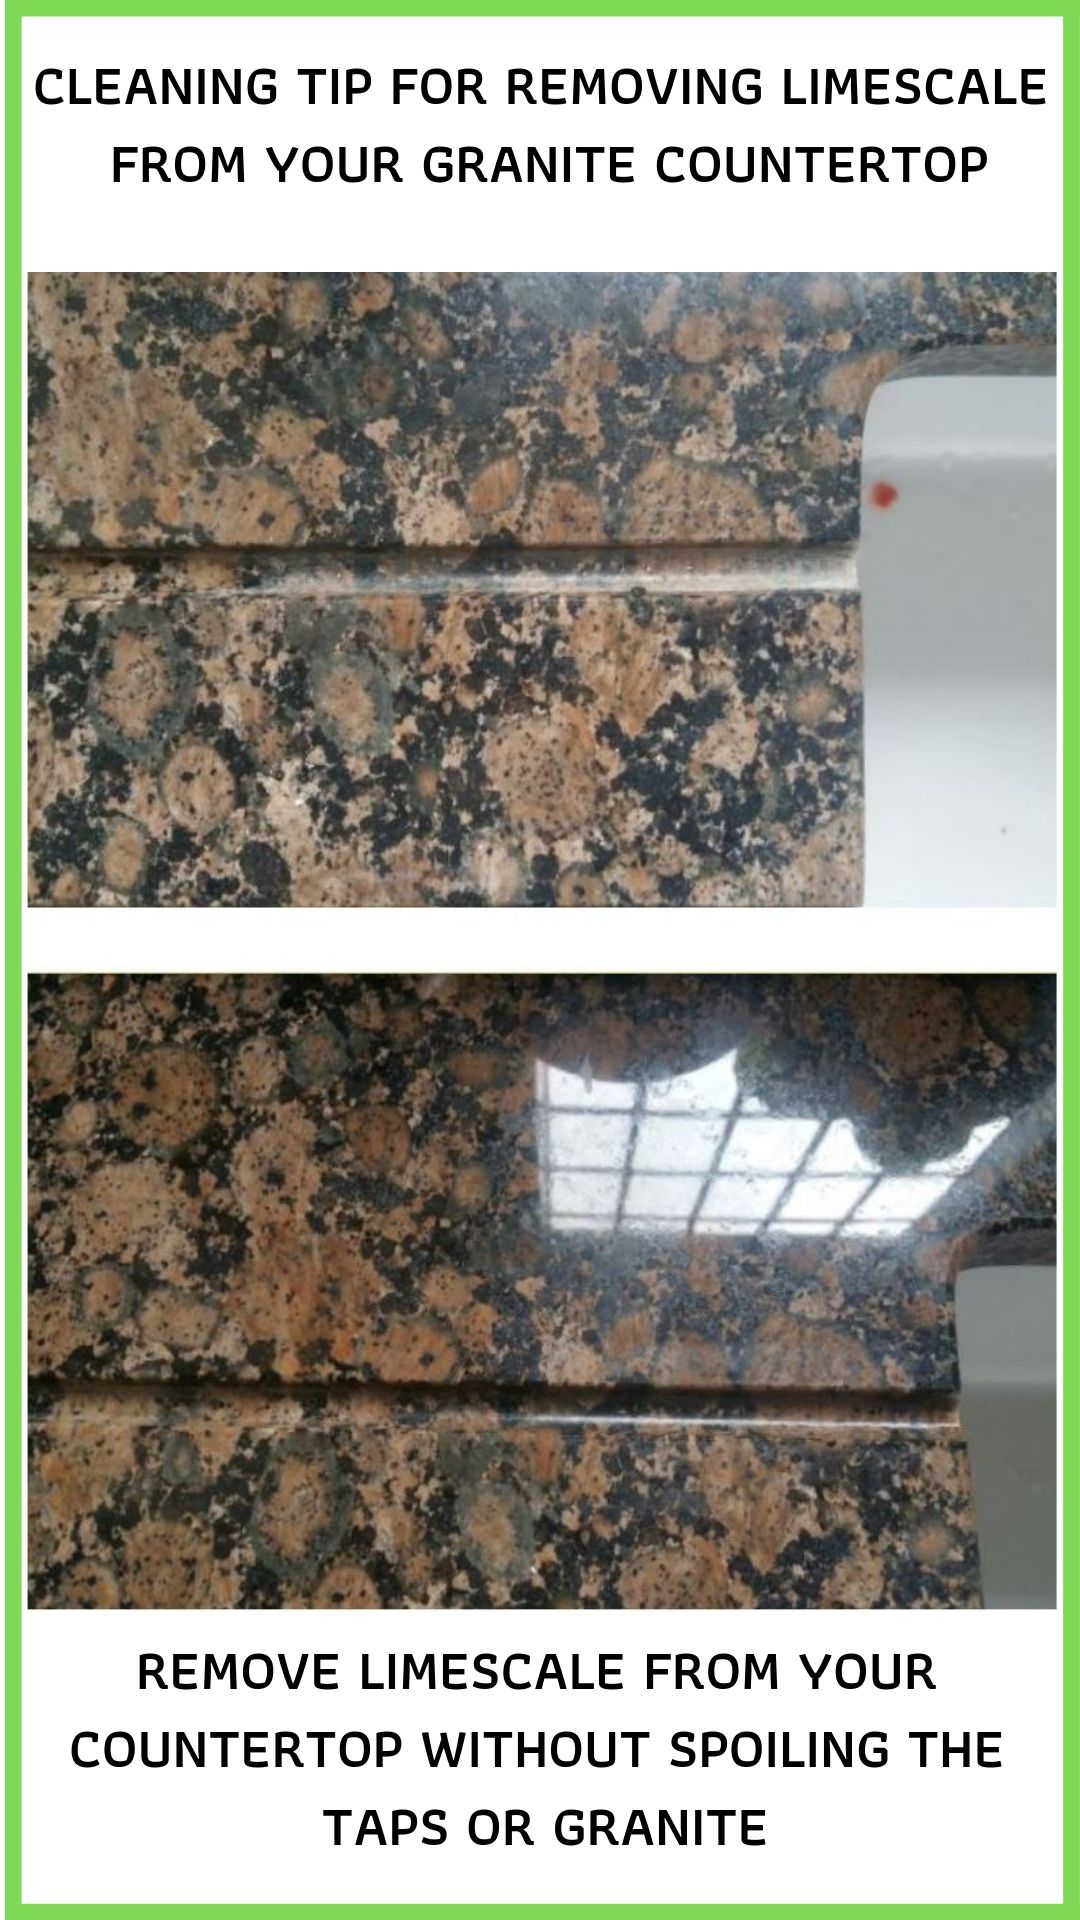 This Is A Simple Method I Use To Safely Remove Limescale From A Granite Worktop Without Using Corrosive Chemicals How To Clean Granite Granite Worktops Granite